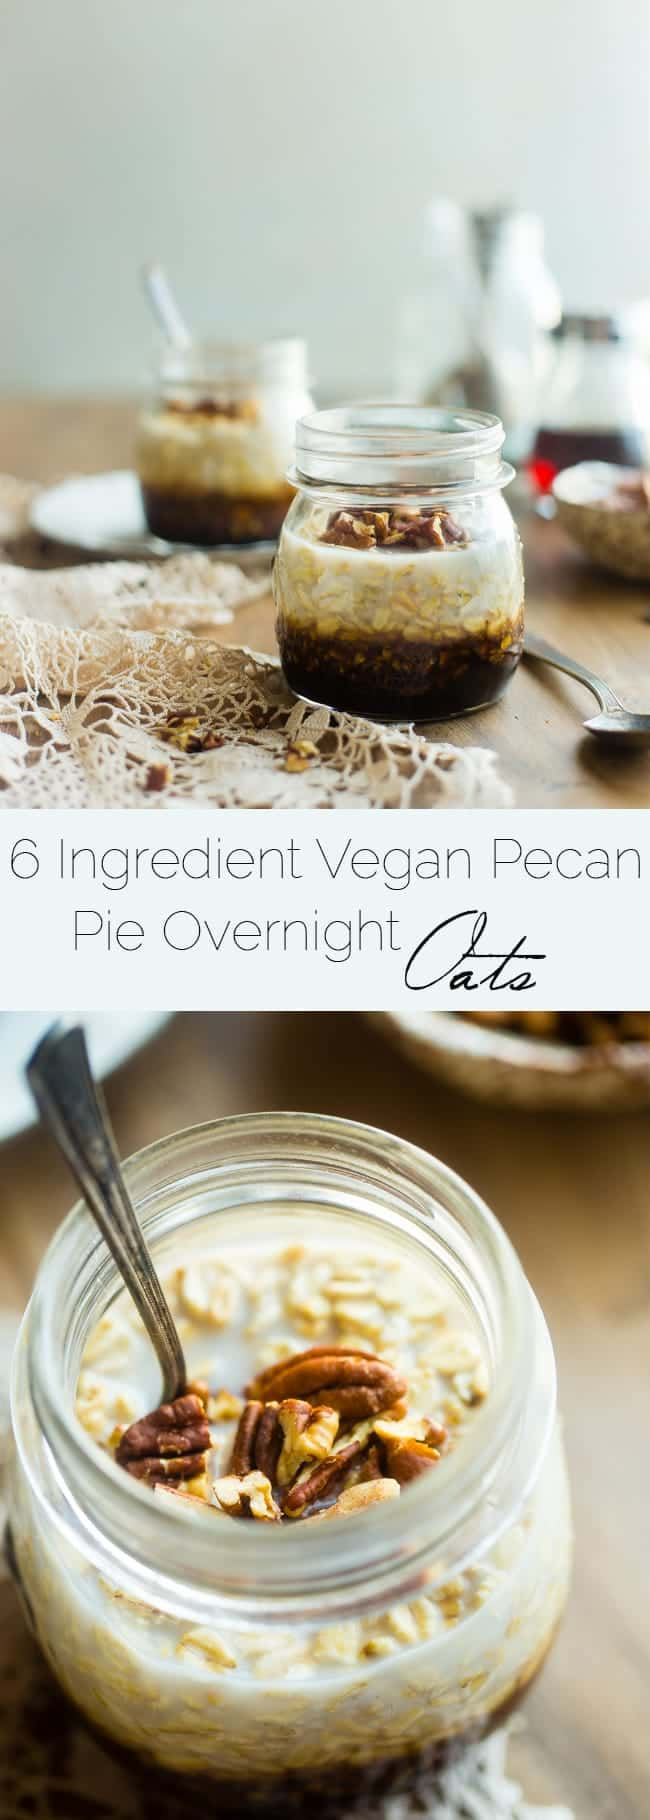 6 Ingredient Vegan Pecan Pie Overnight Oats - These healthy overnight oats taste like pecan pie! They're a 10 minute, gluten free make-ahead breakfast with only 6 ingredients that tastes like dessert! | Foodfaithfitness.com | @FoodFaithFit